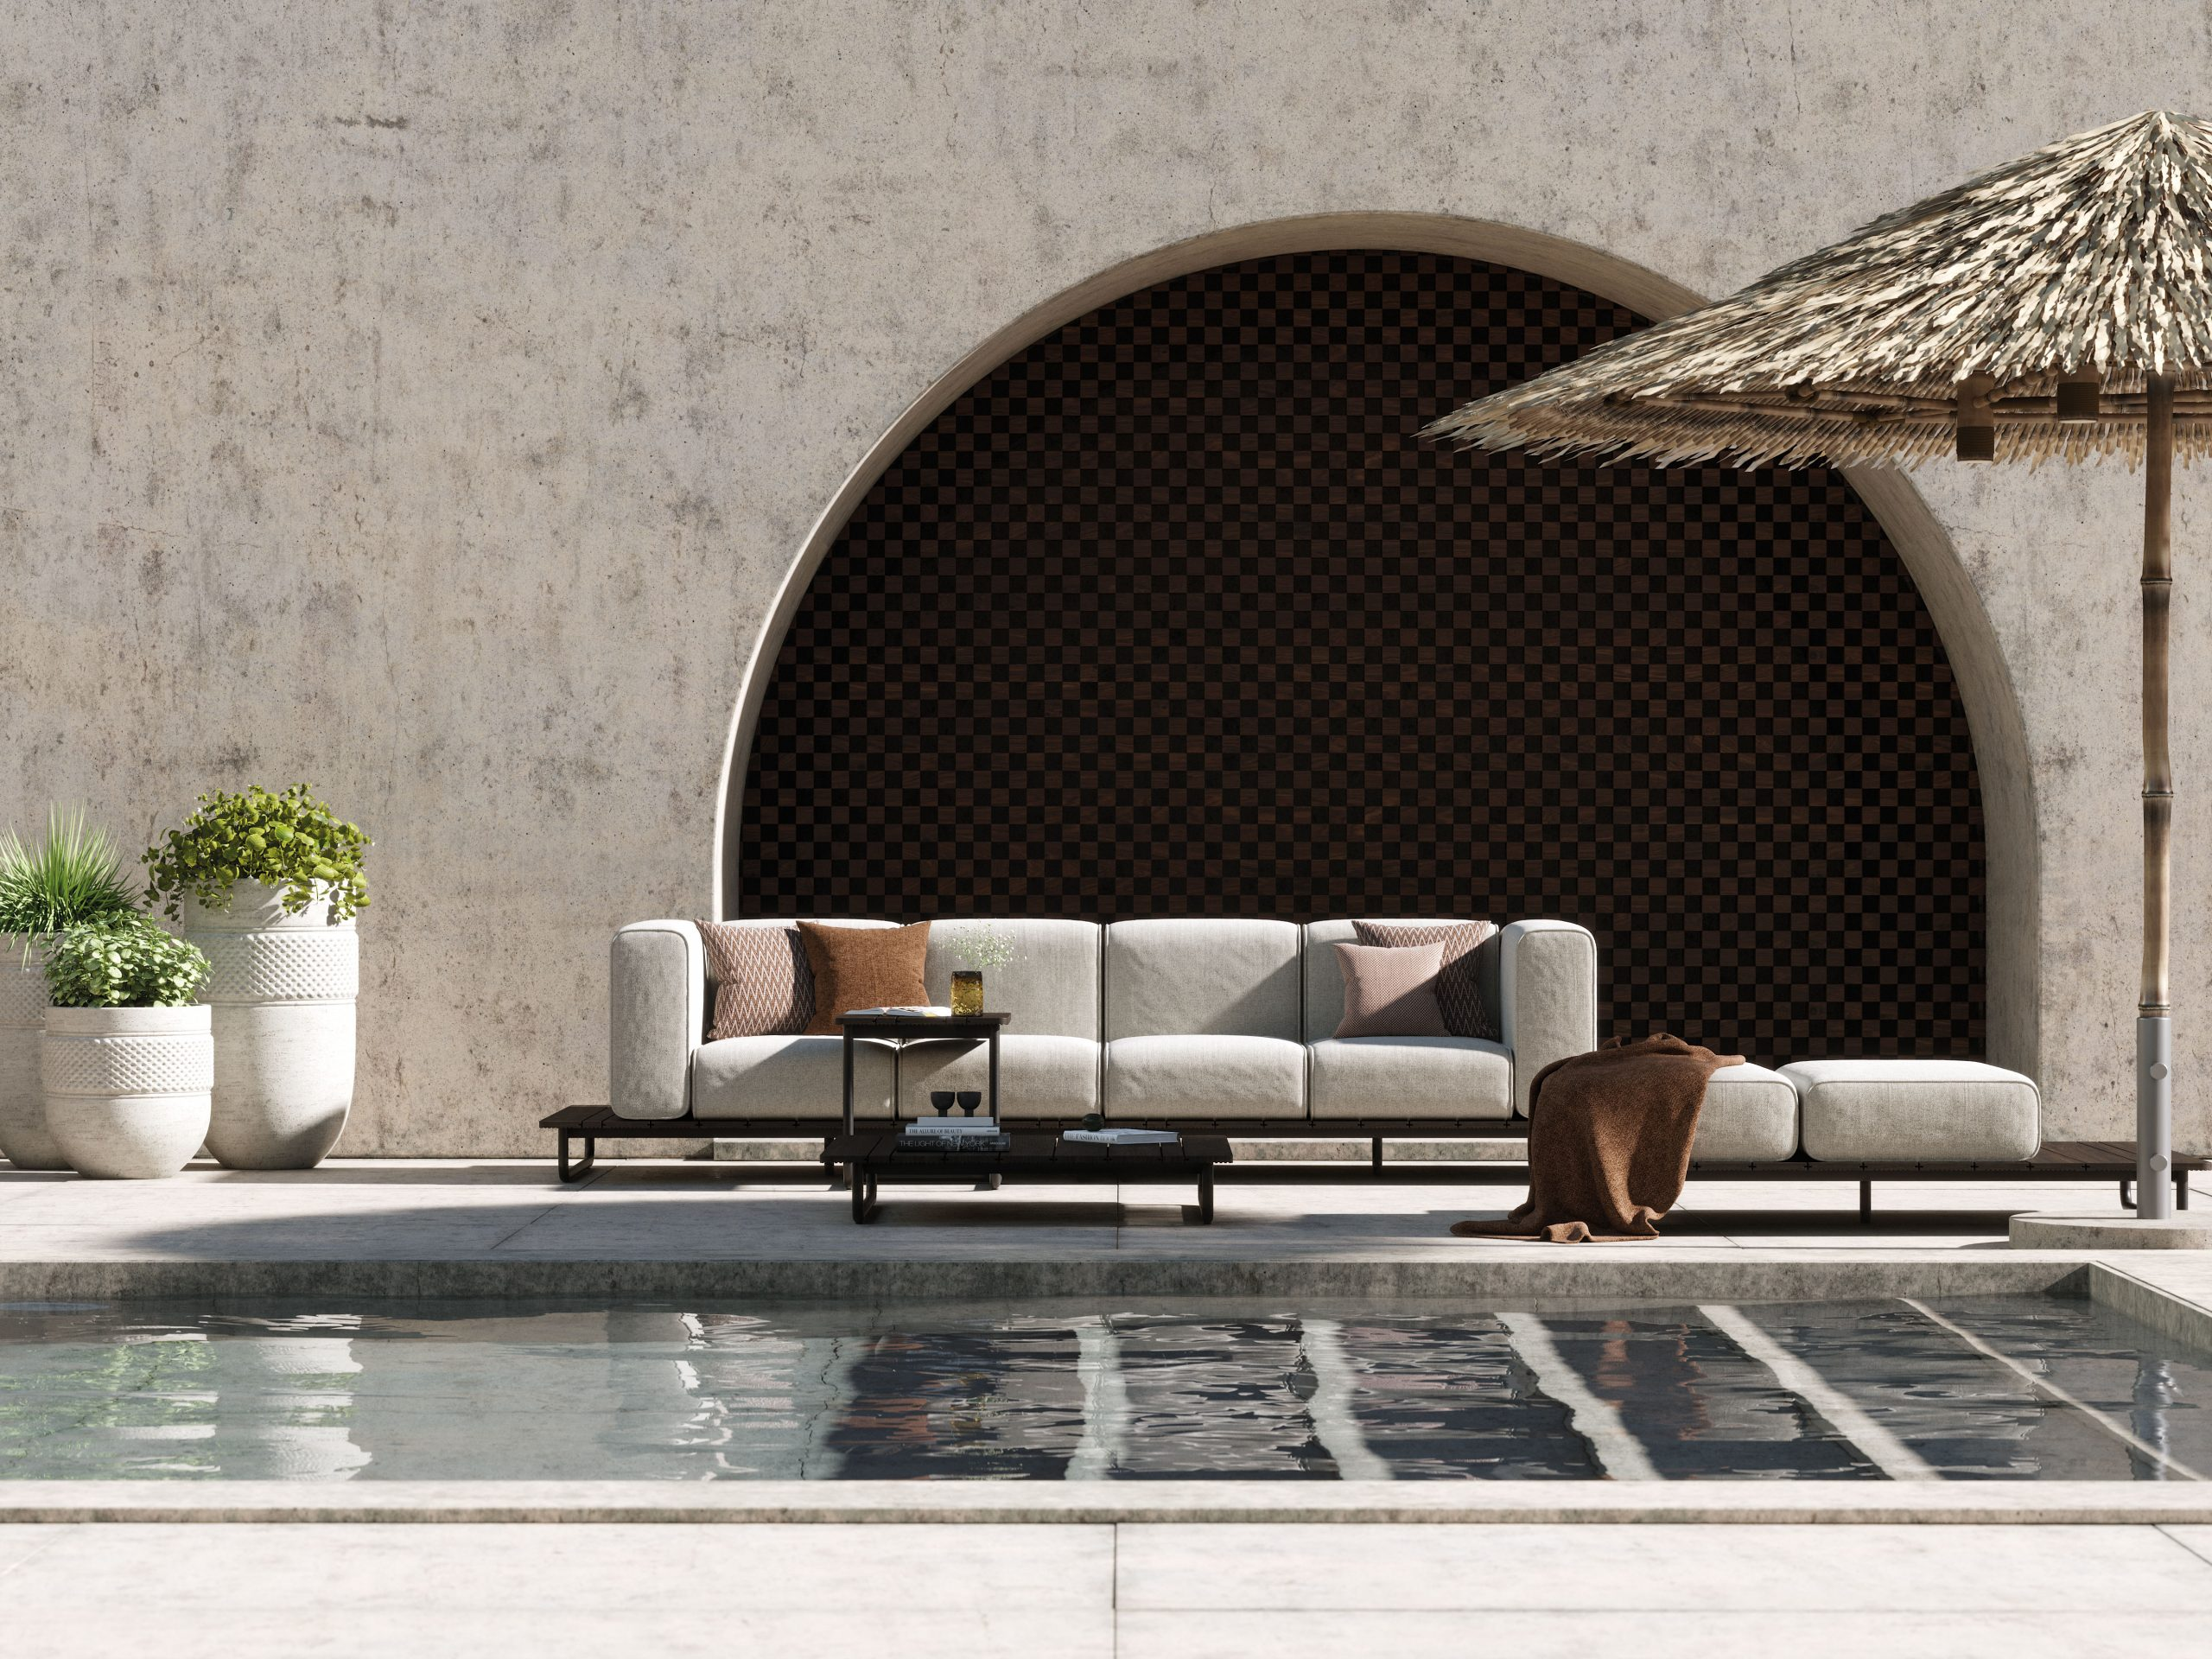 a luxurious outdoor space